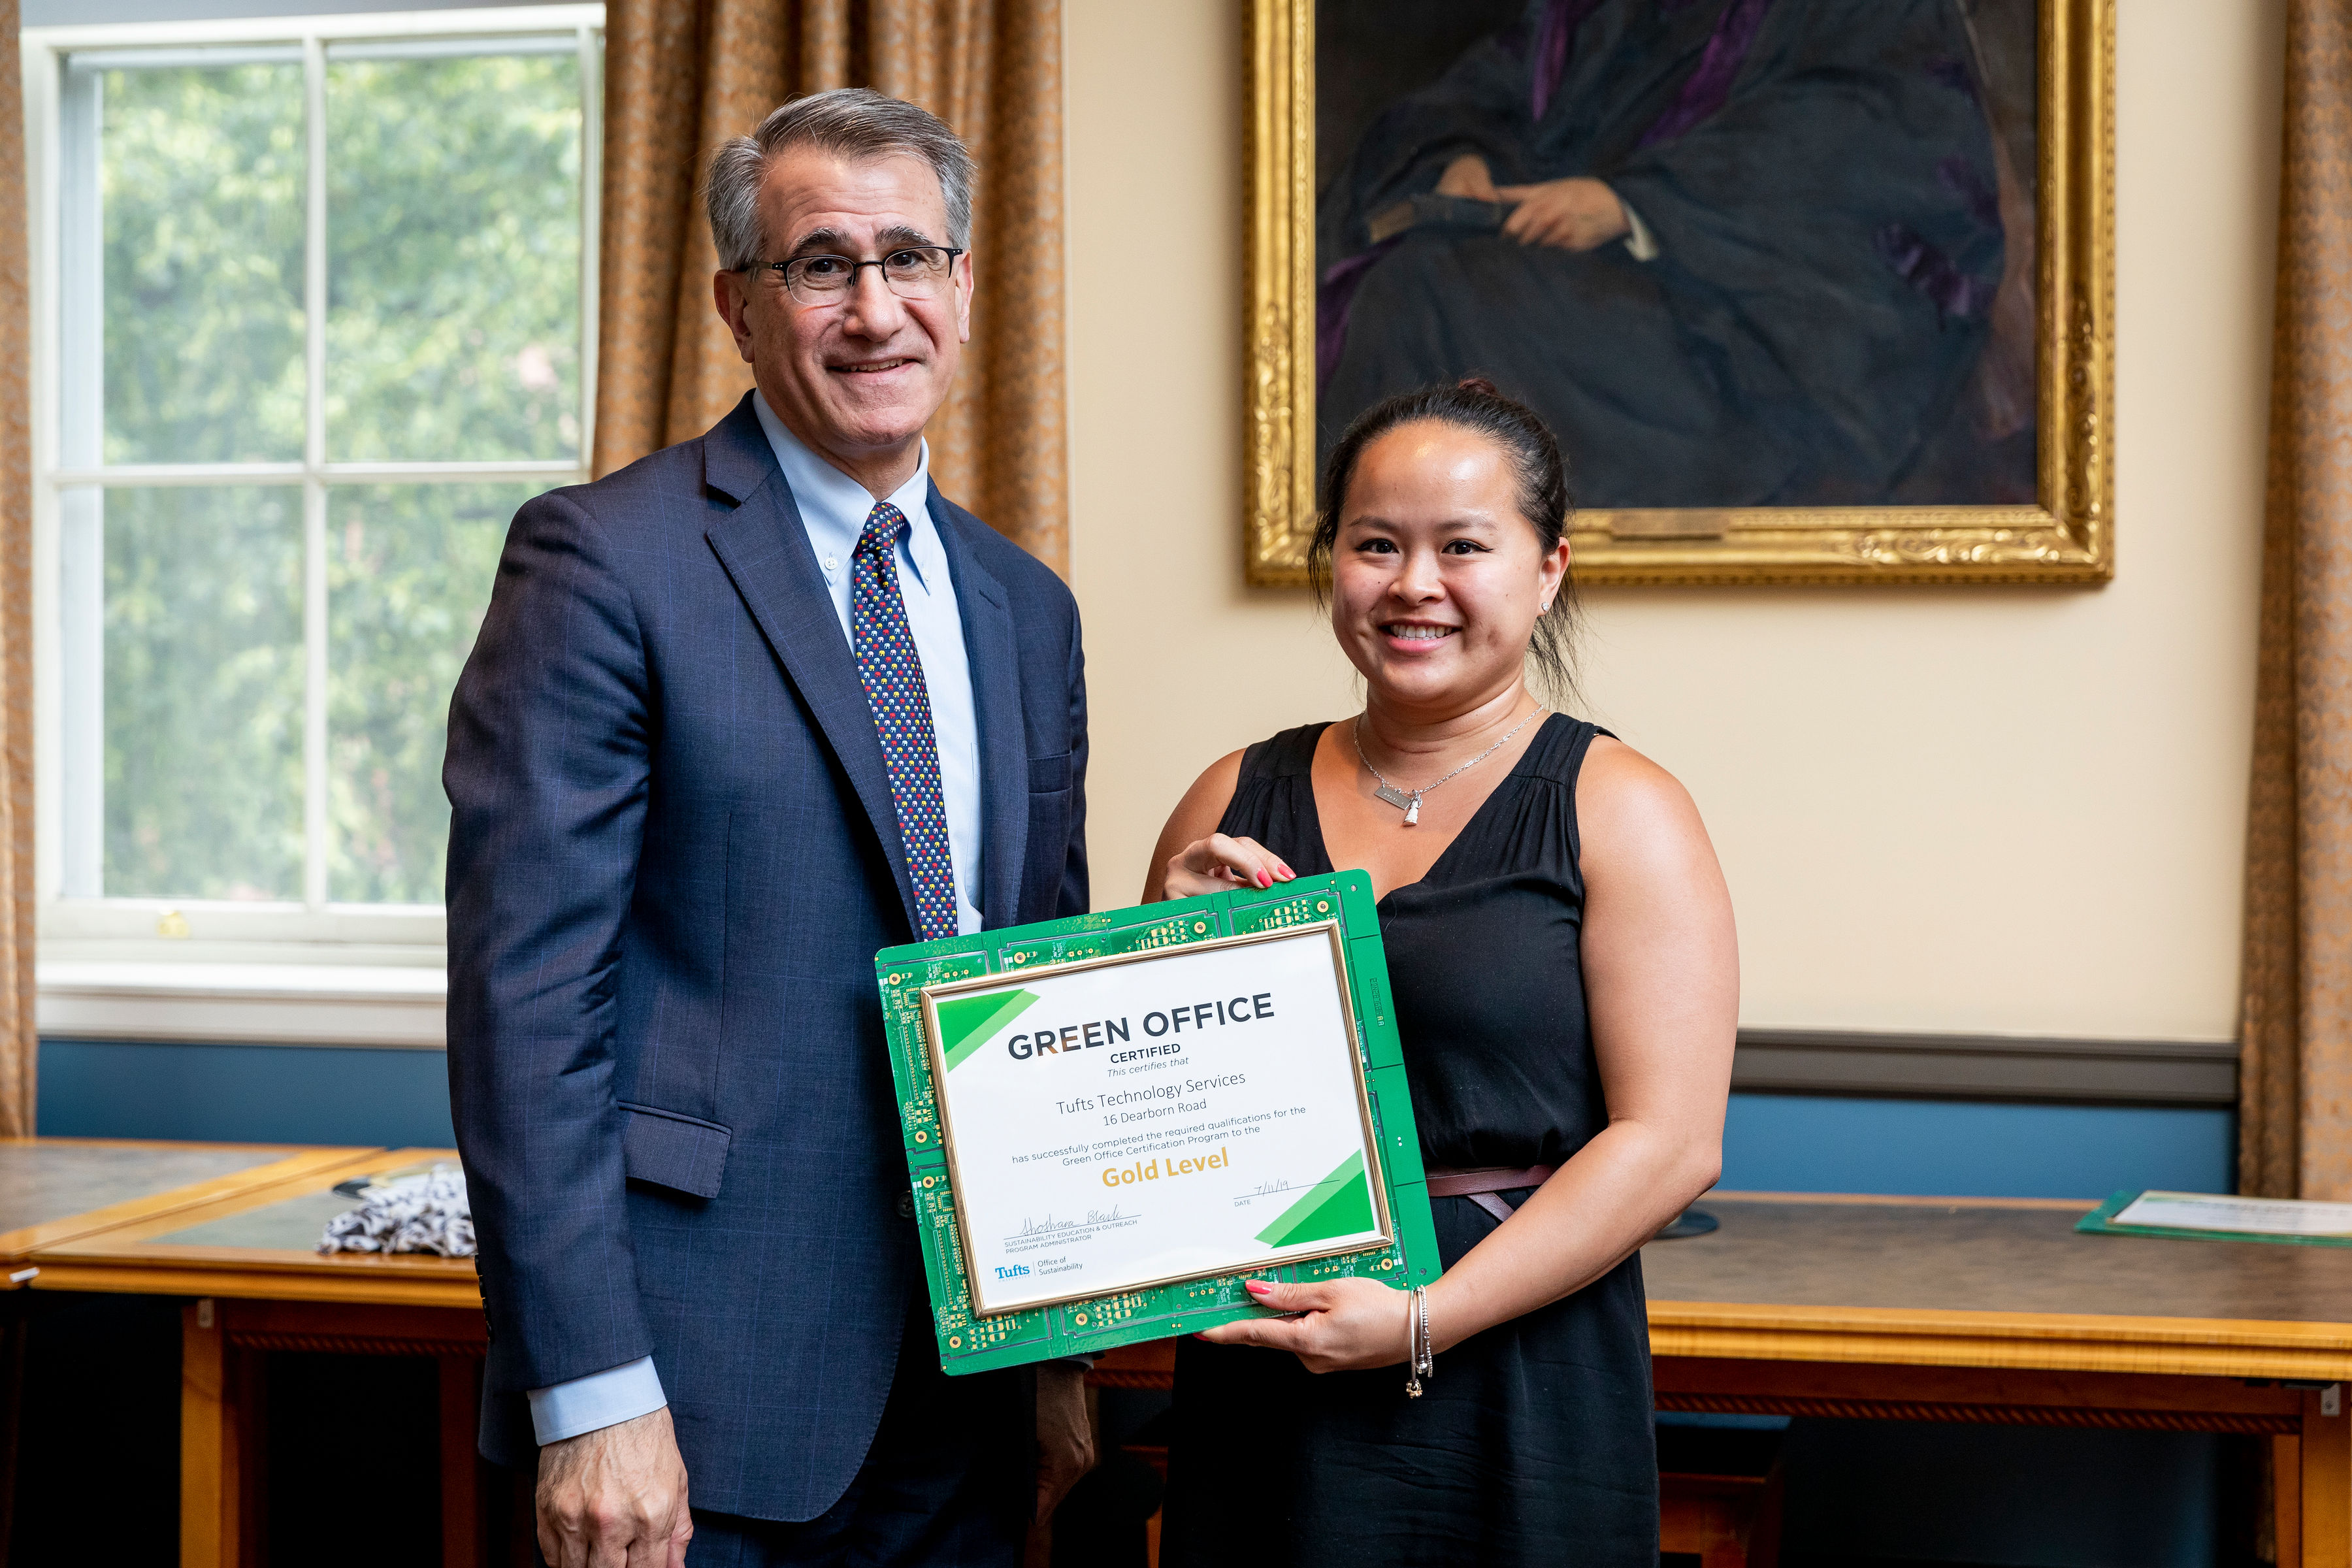 Anthony Monaco awarding someone with Green Office certificate